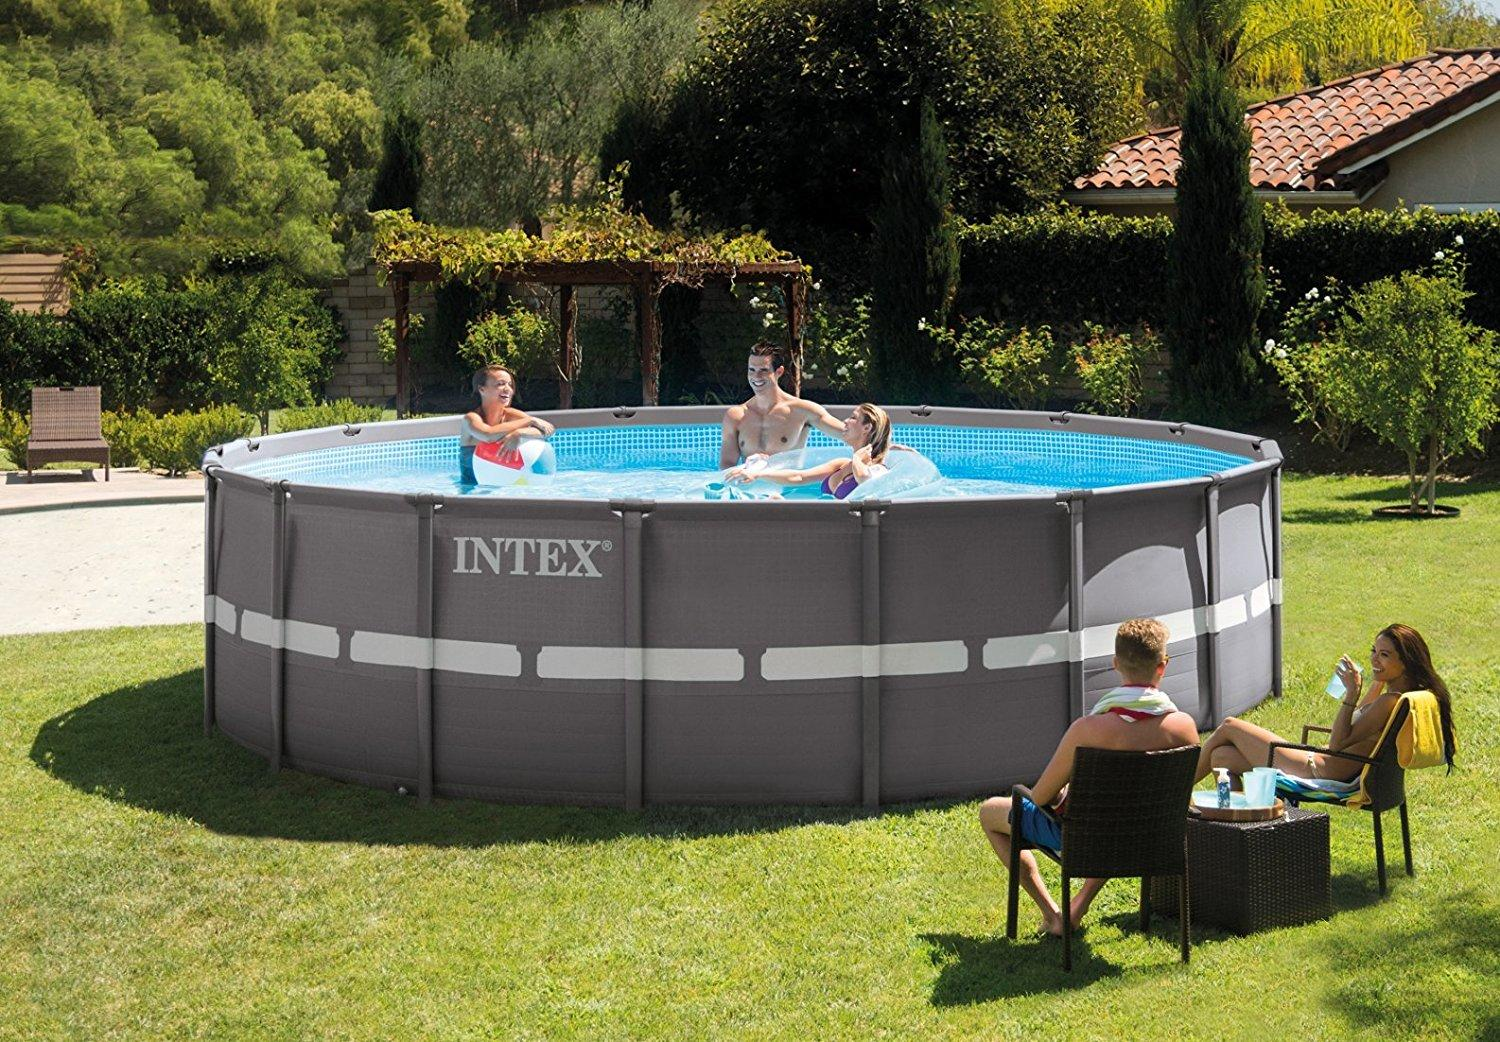 Piscina Intex Rotonda Piscina Intex 26332 Plus Ultraframe Rotonda 549 X 132 Cm